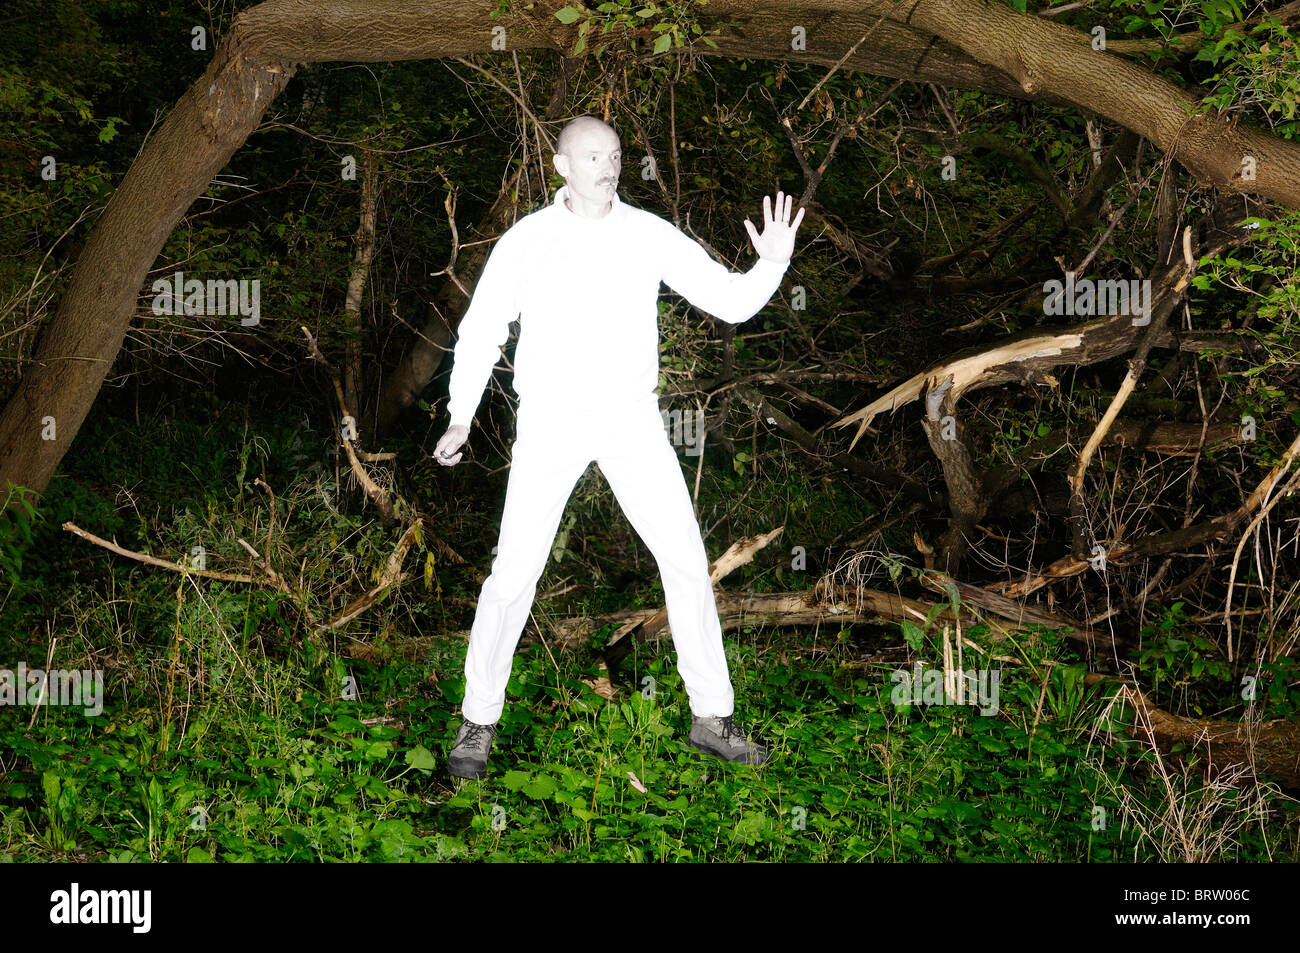 Floating alien man in bright white clothes caught in a thick overgrown forest - Stock Image